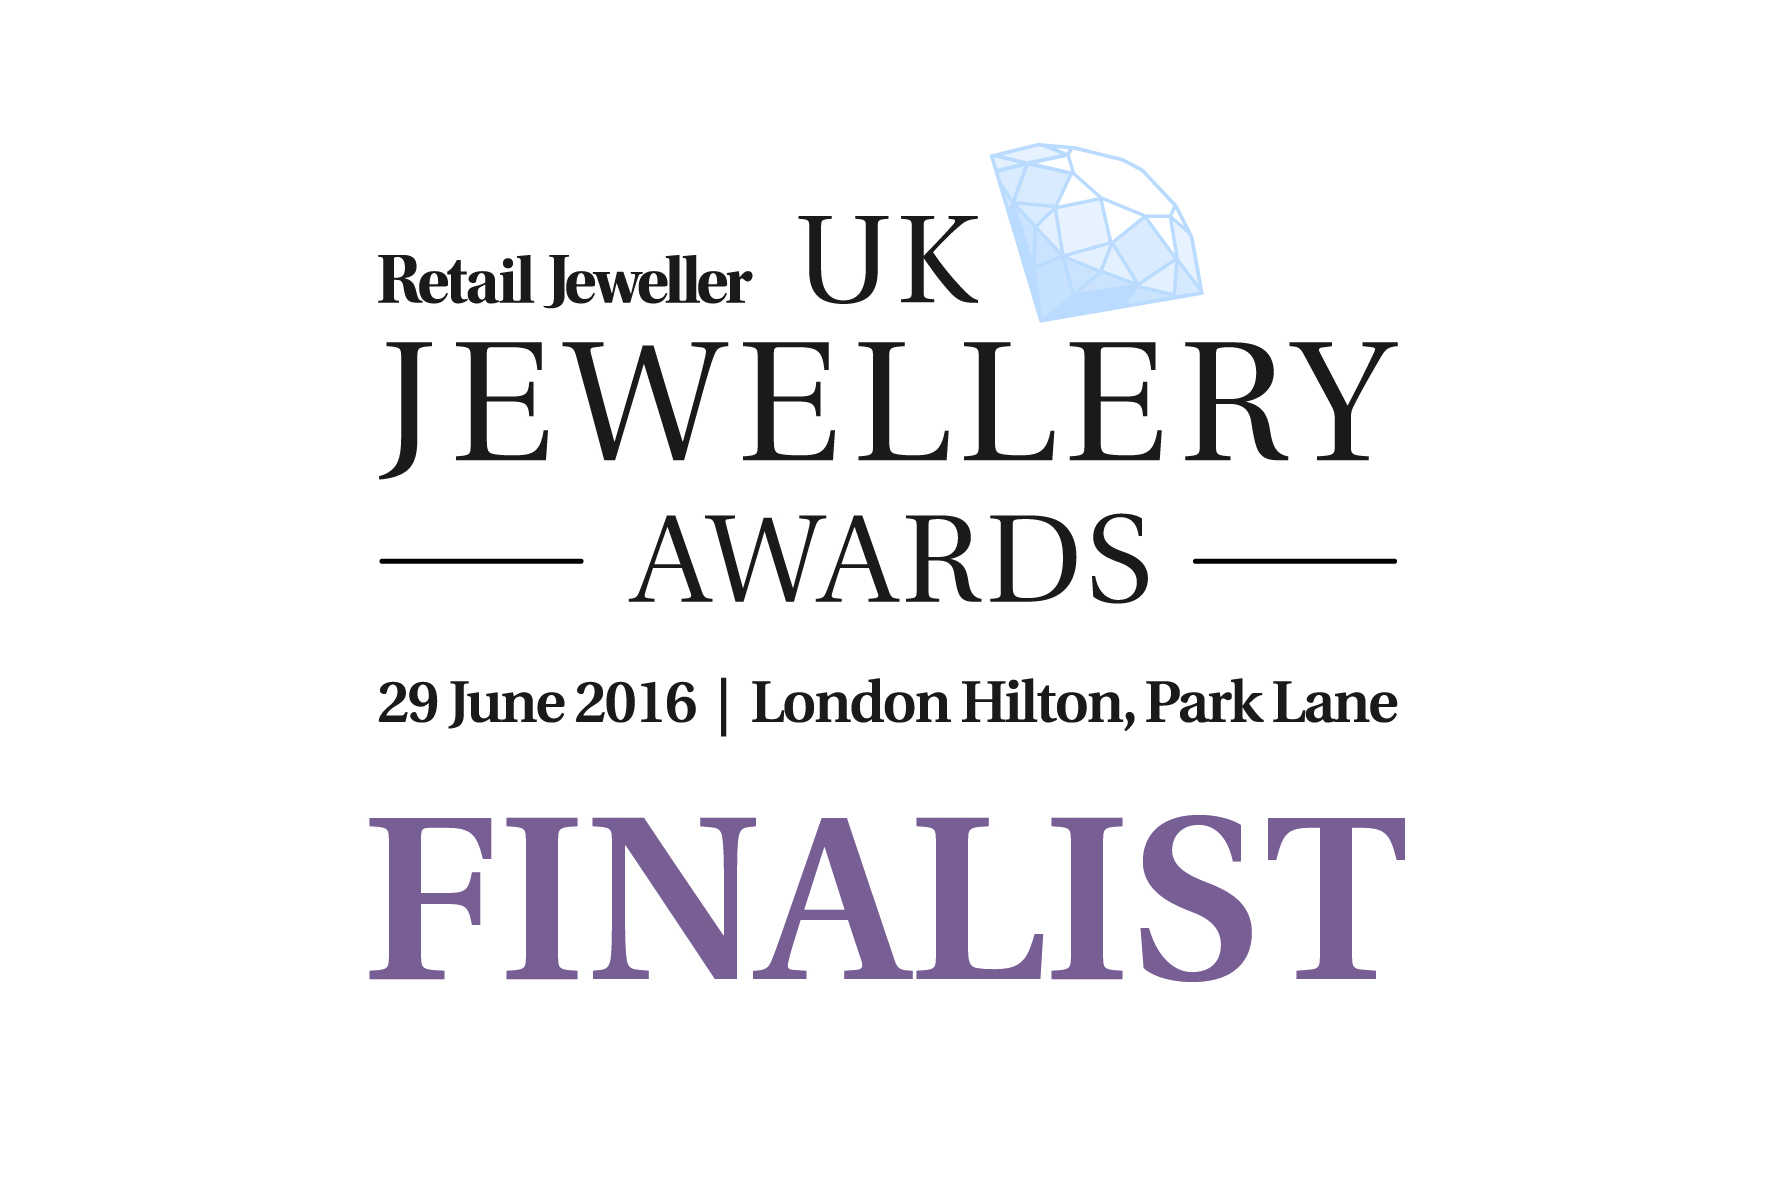 RETAIL-JEWELLER_LOGO_FINALIST copy.jpg